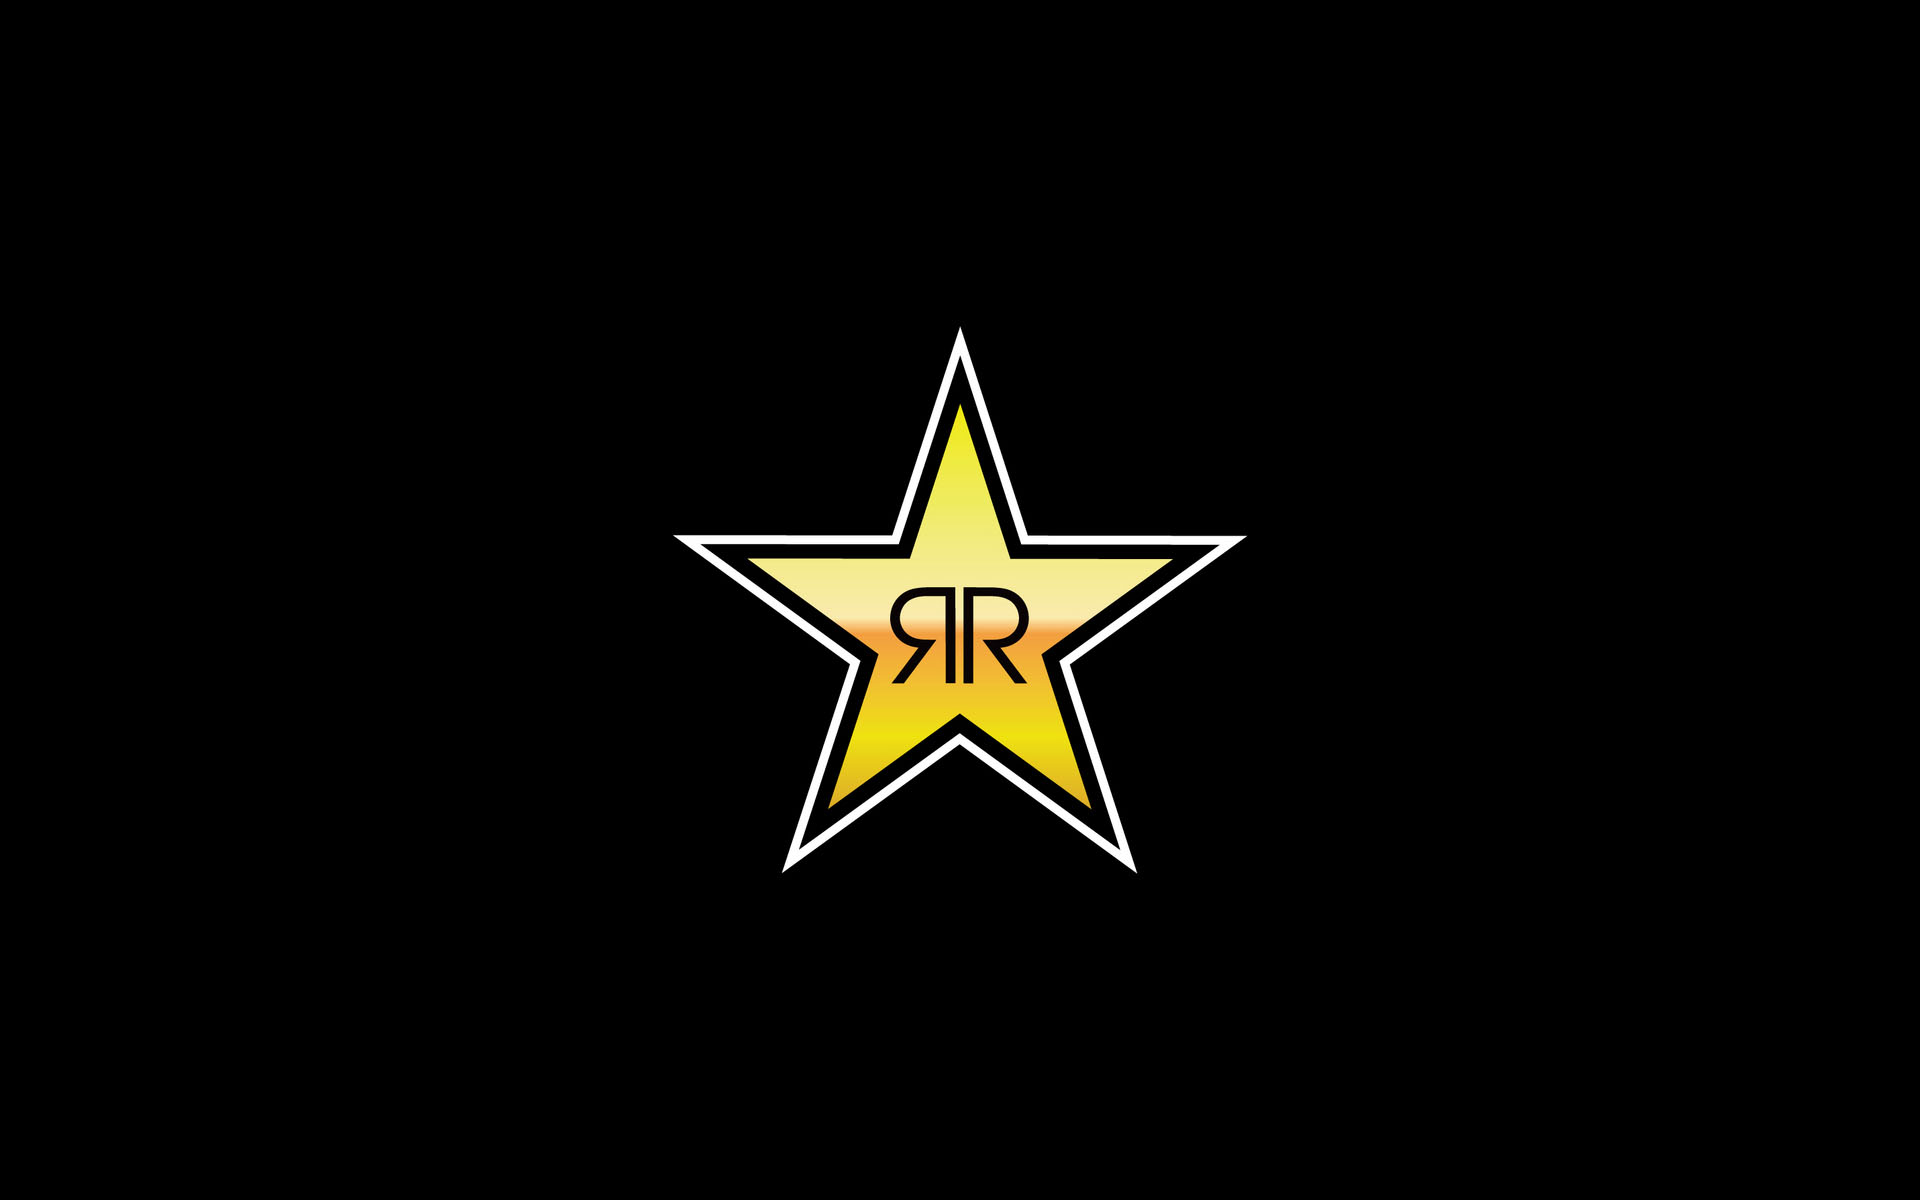 Rockstar Energy Logo wallpaper | 1920x1200 | #80107